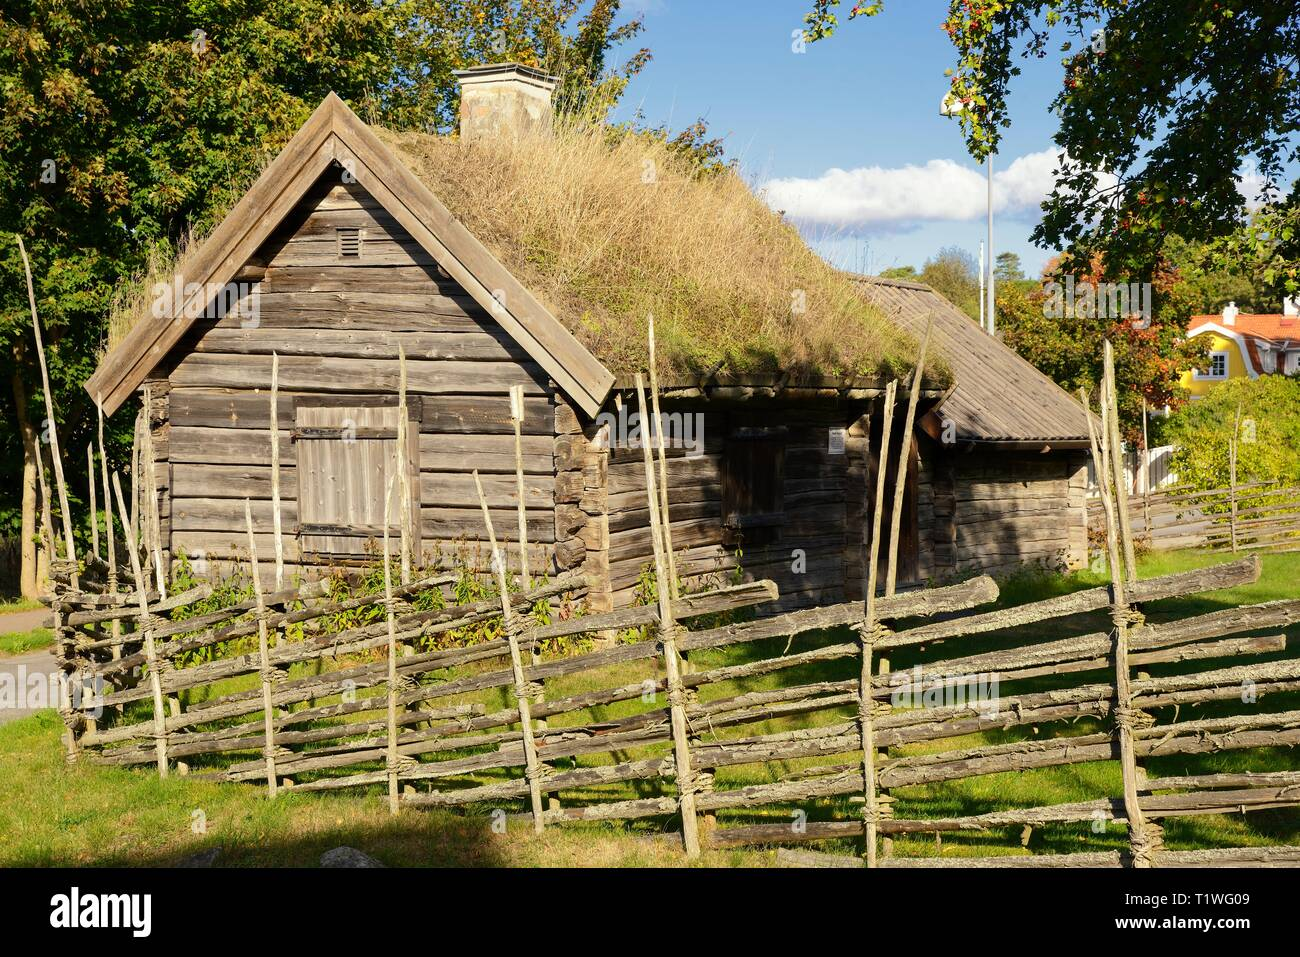 Old abandoned farm cabin in northern Sweden - Stock Image